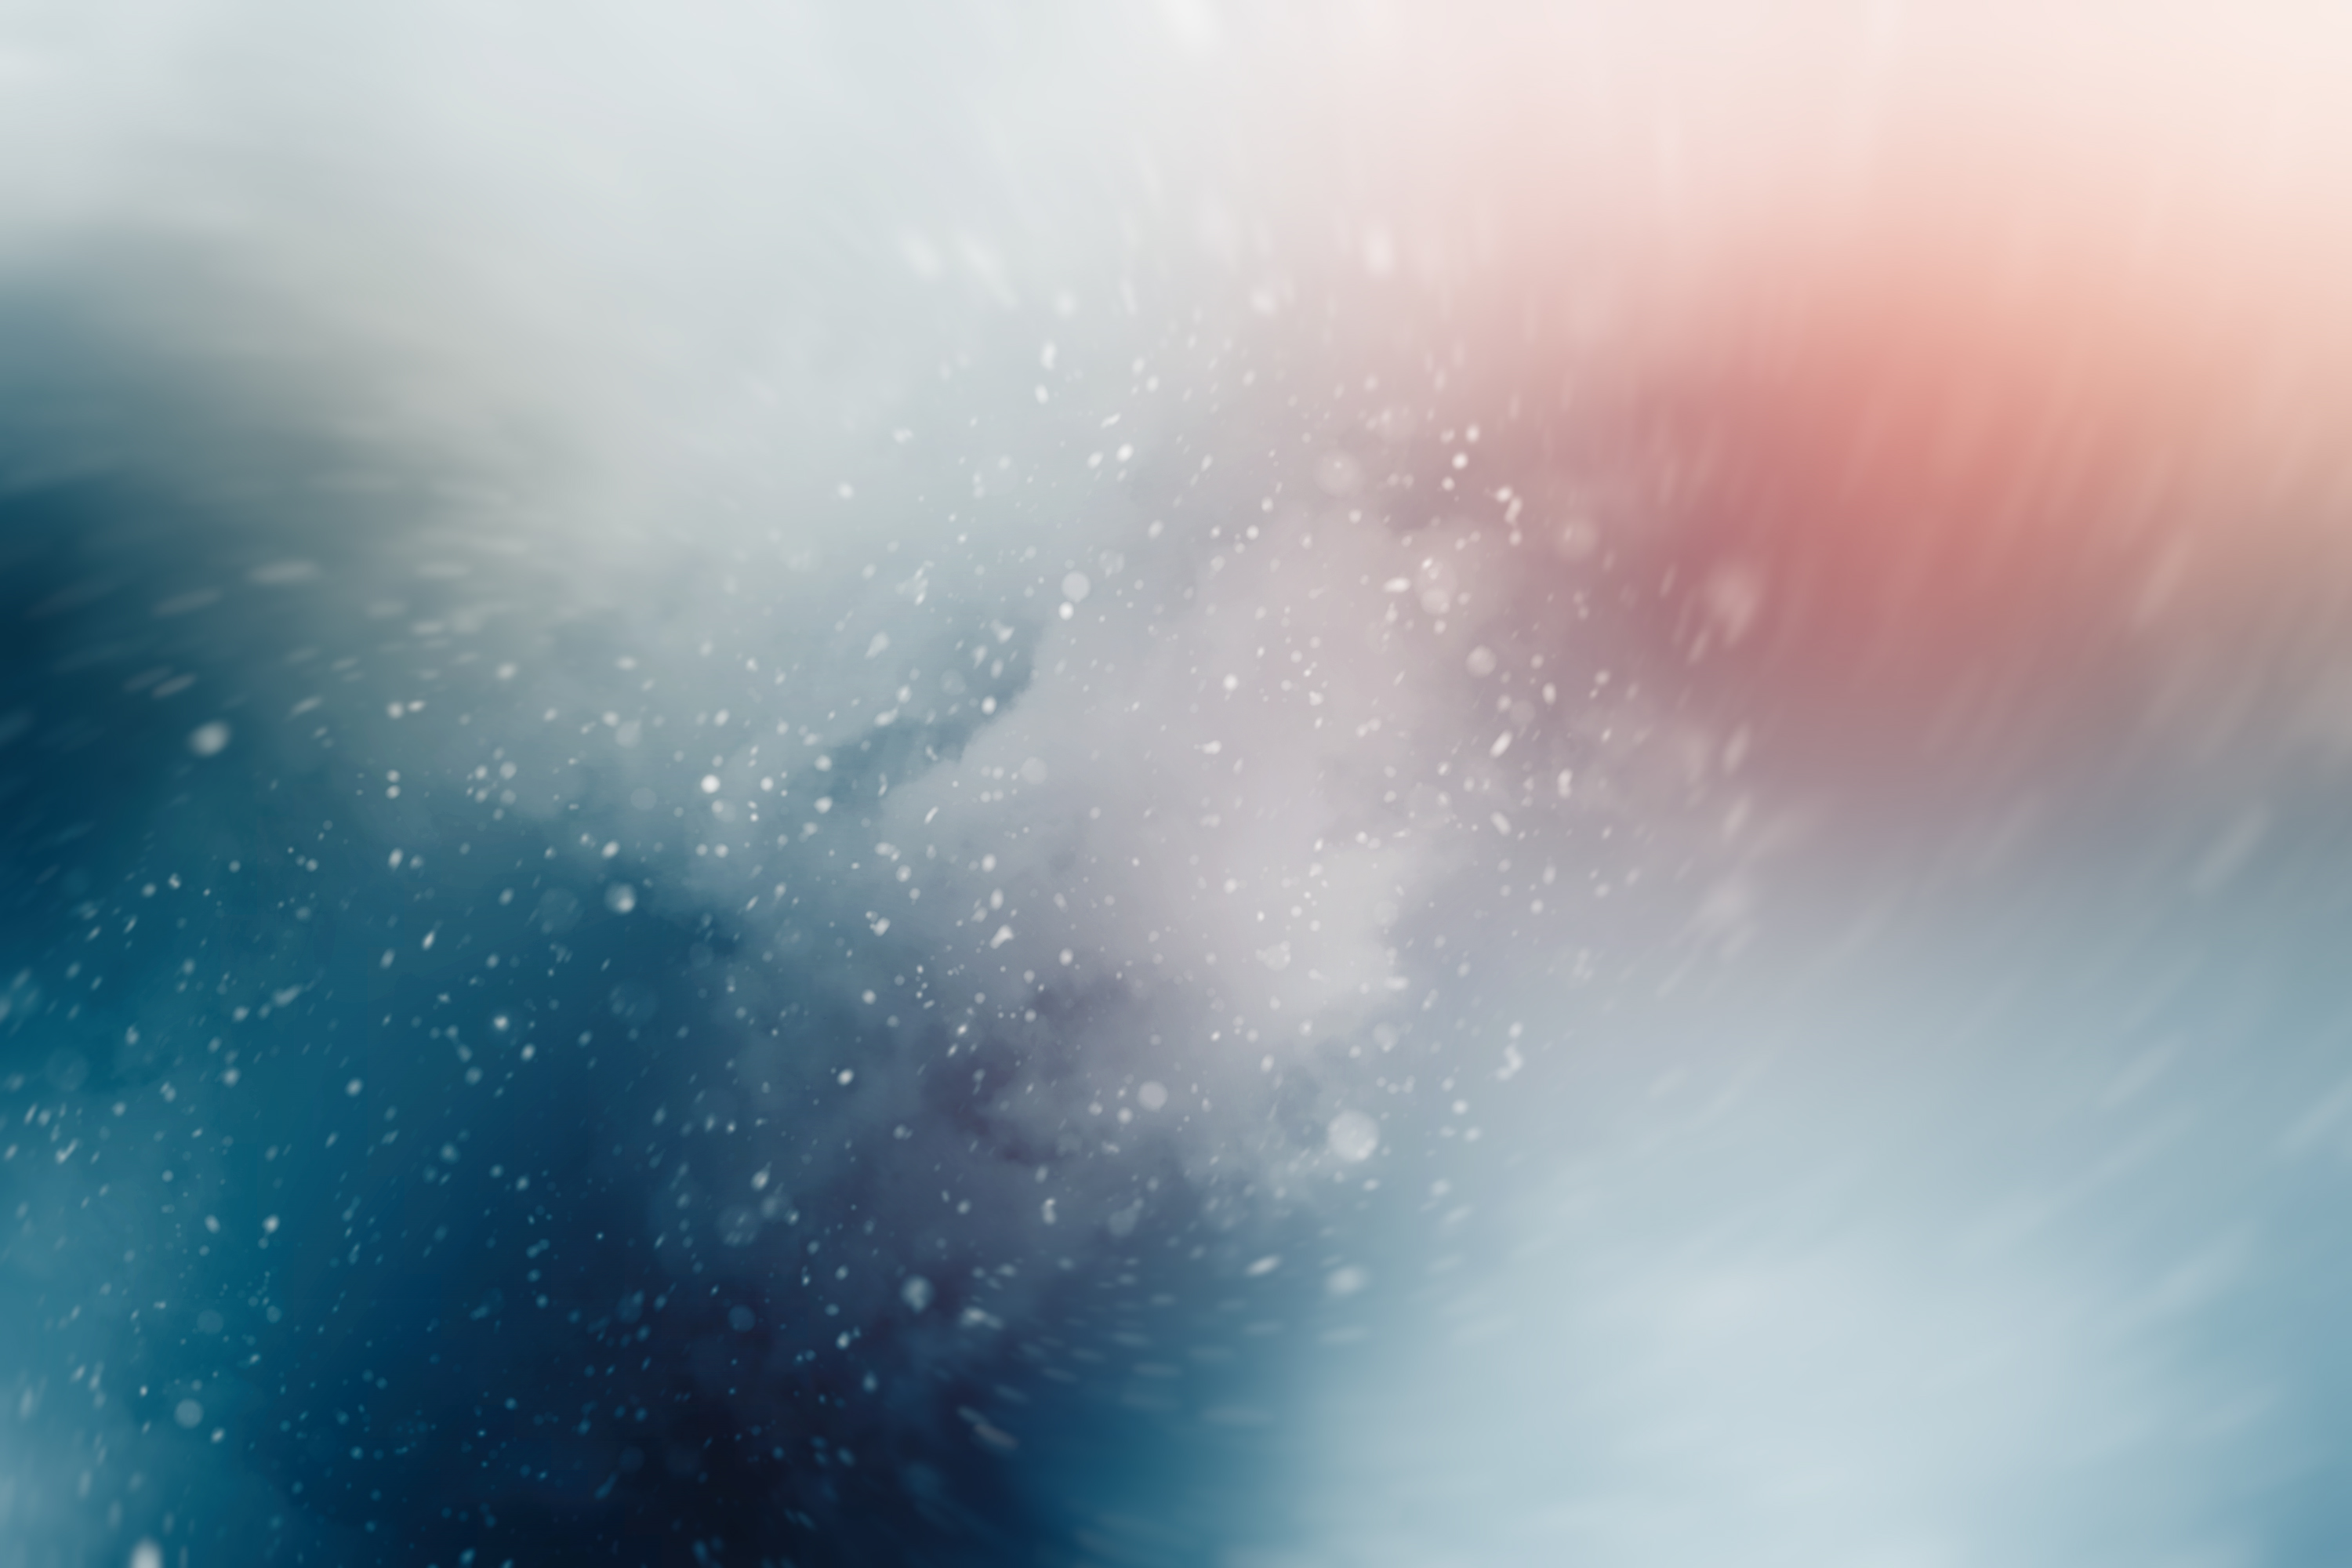 Dreamy misty snowflake background 54335